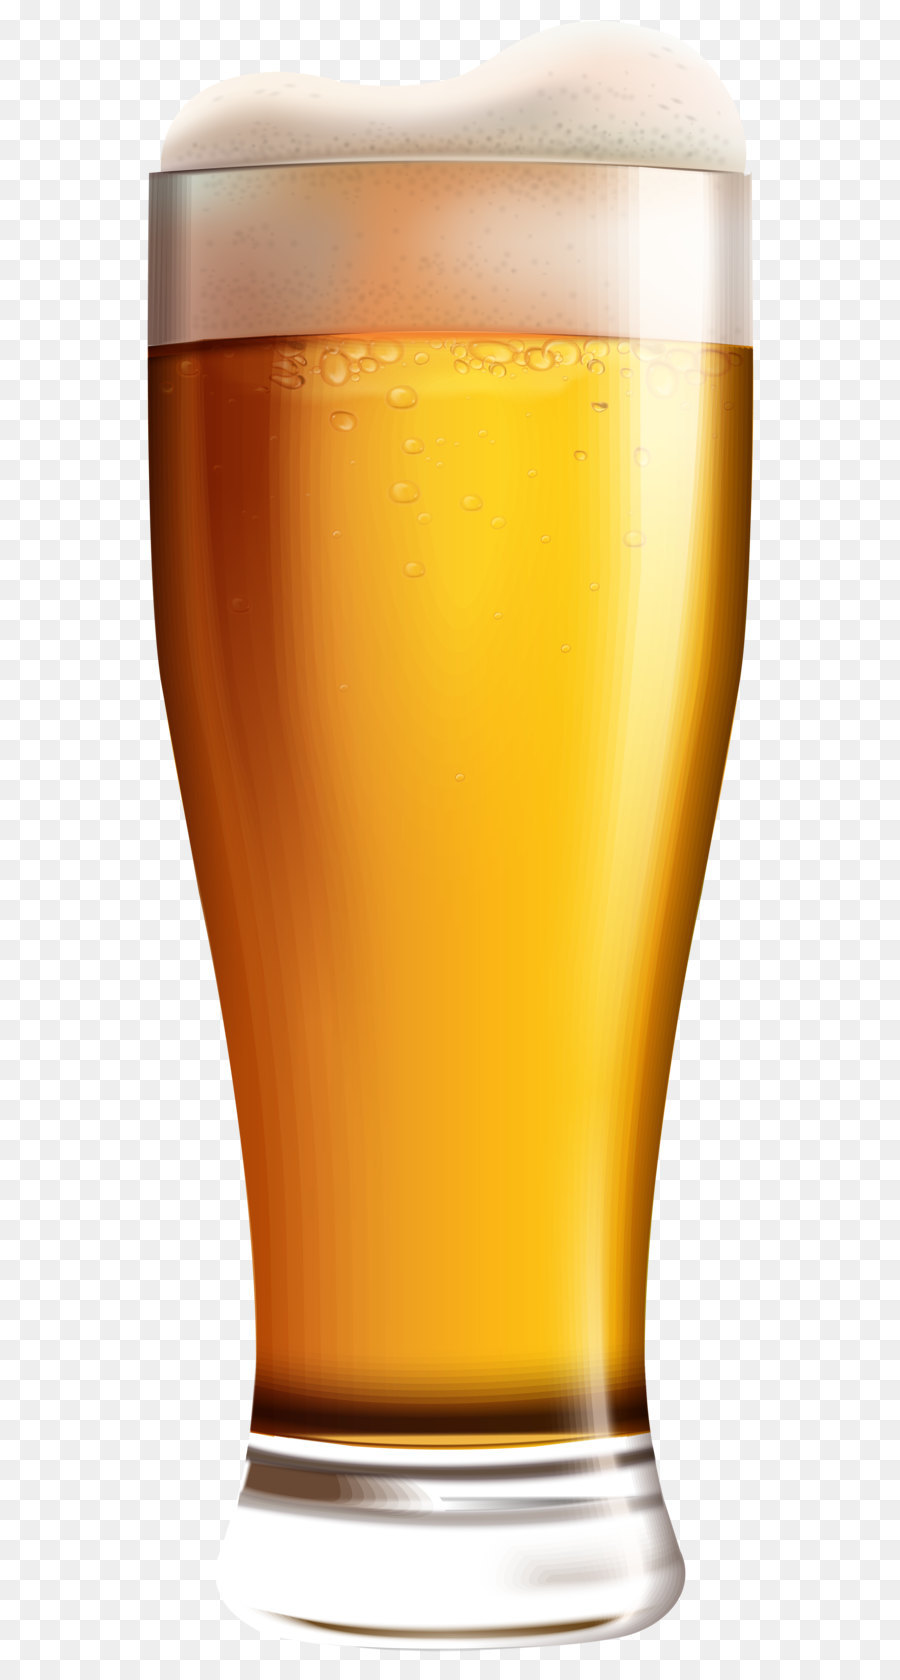 Glass Of Beer Png & Free Glass Of Beer.png Transparent.